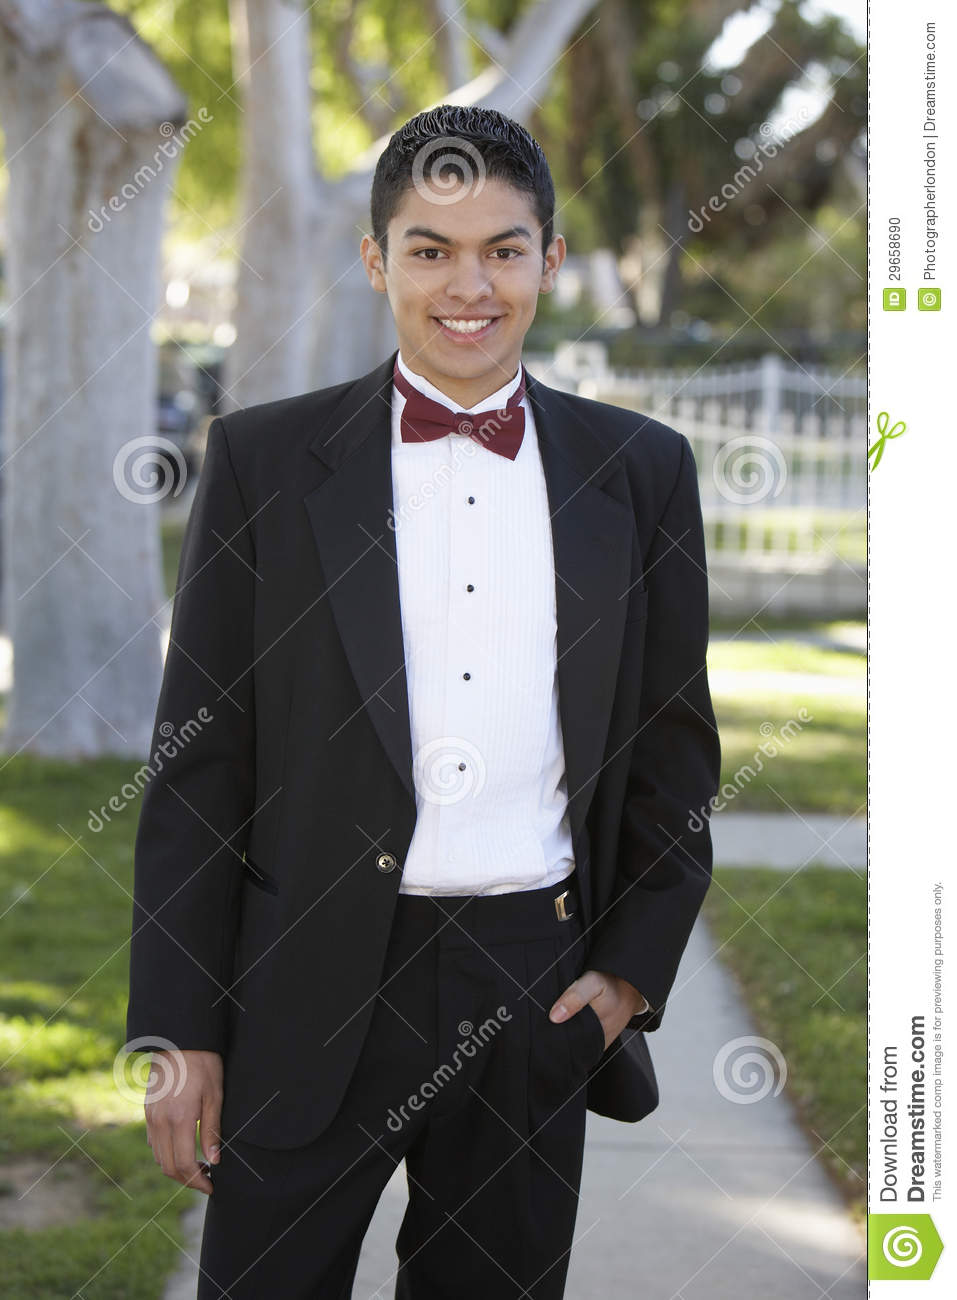 teenage boy in tuxedo standing with hand in pocket at